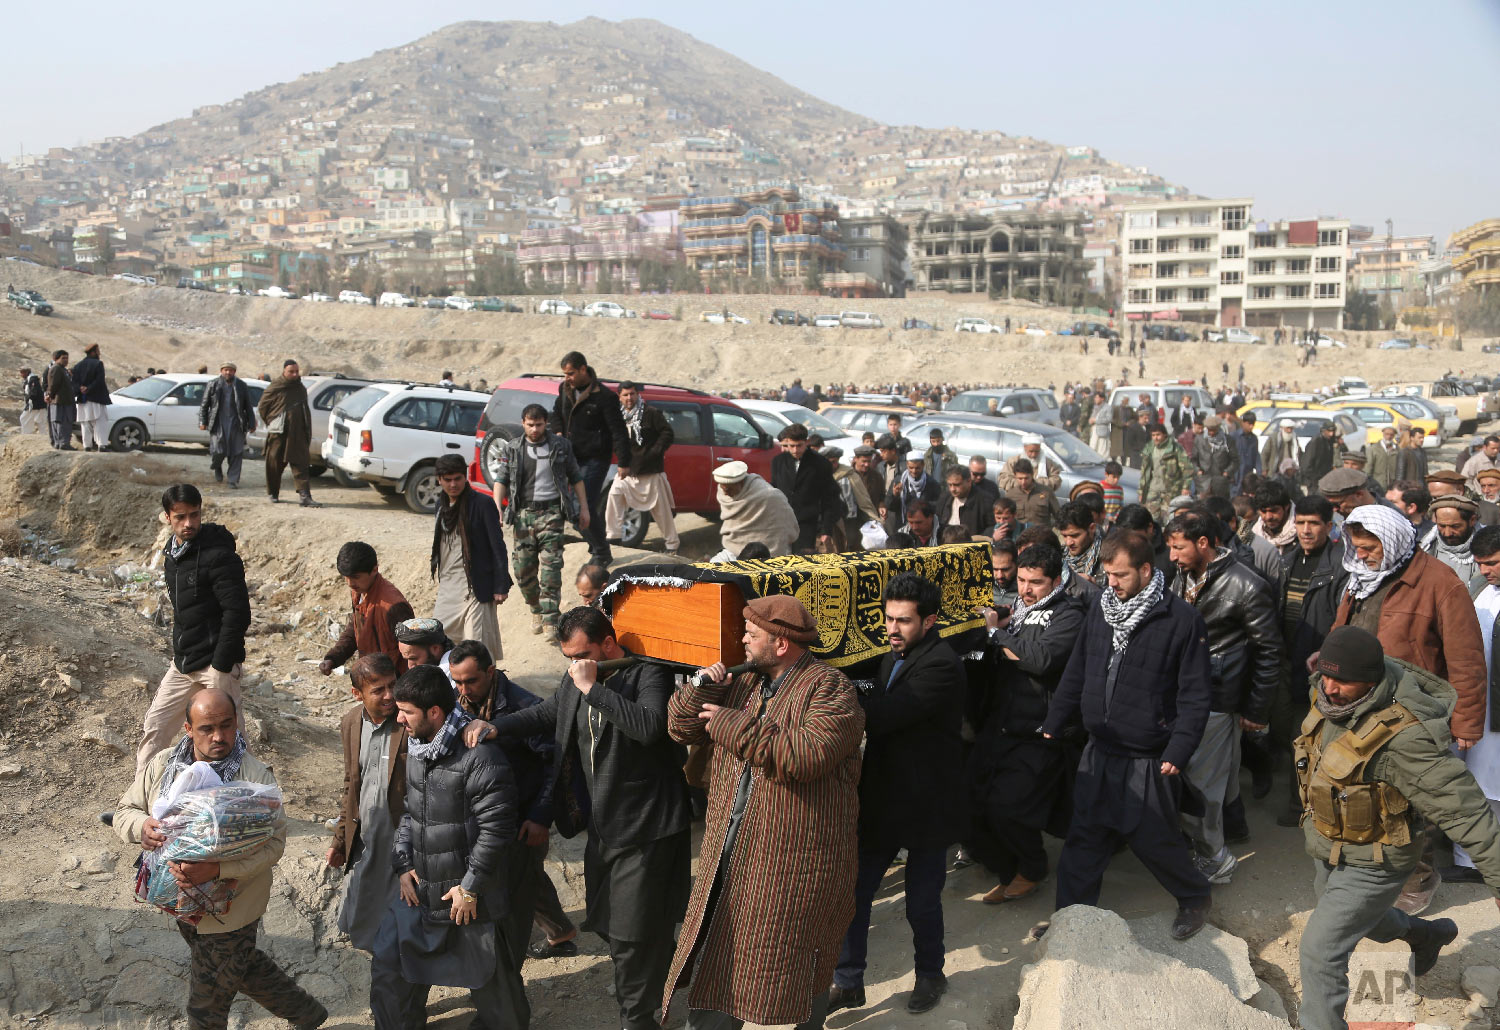 Men carry the coffin of a relative who died in Saturday's deadly suicide attack in Kabul, Afghanistan, Jan. 28, 2018. (AP Photo/Rahmat Gul)